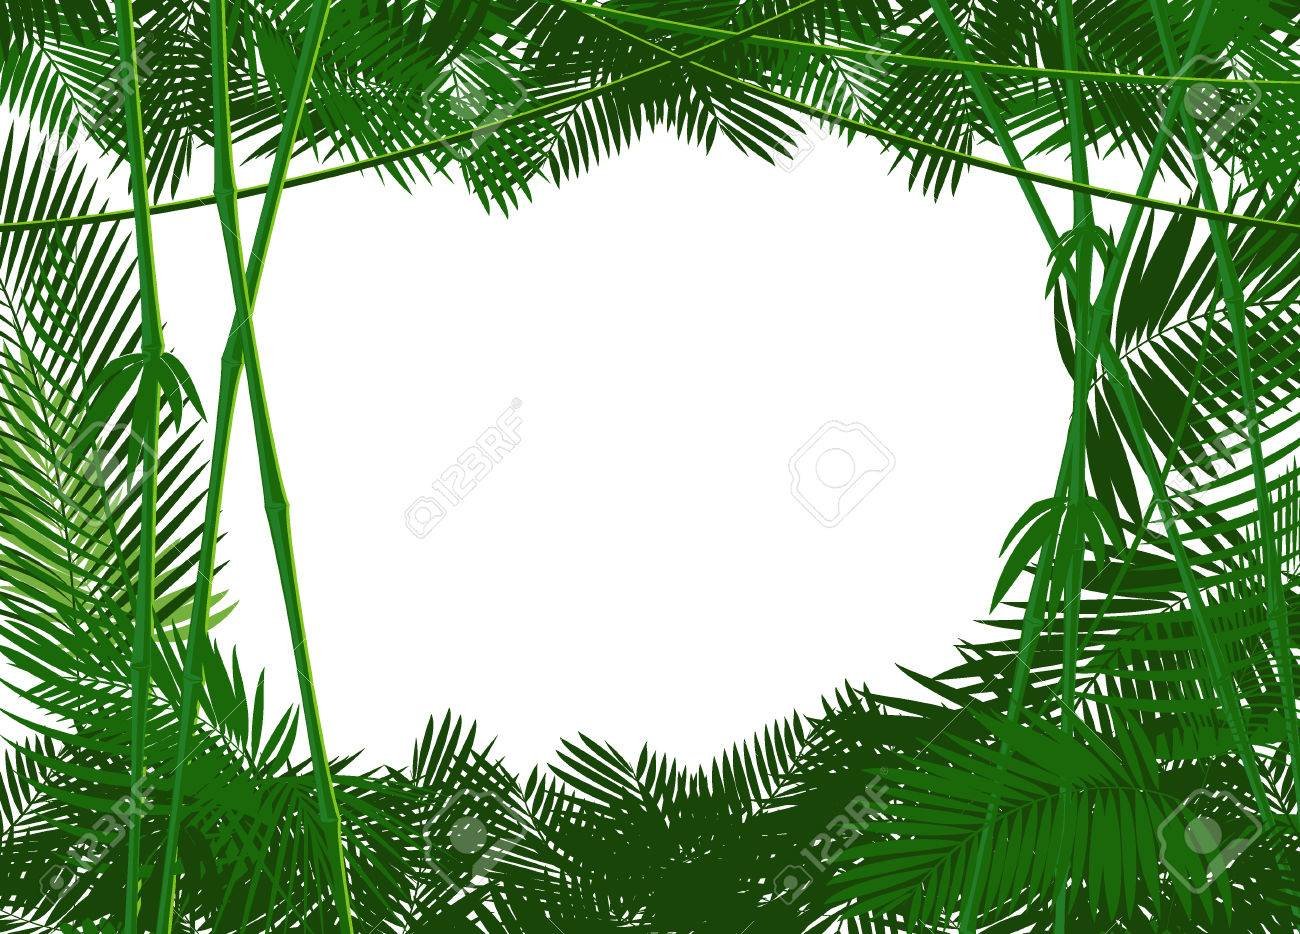 jungle forest backgound for you text or simple image. vector illustration - 51569596